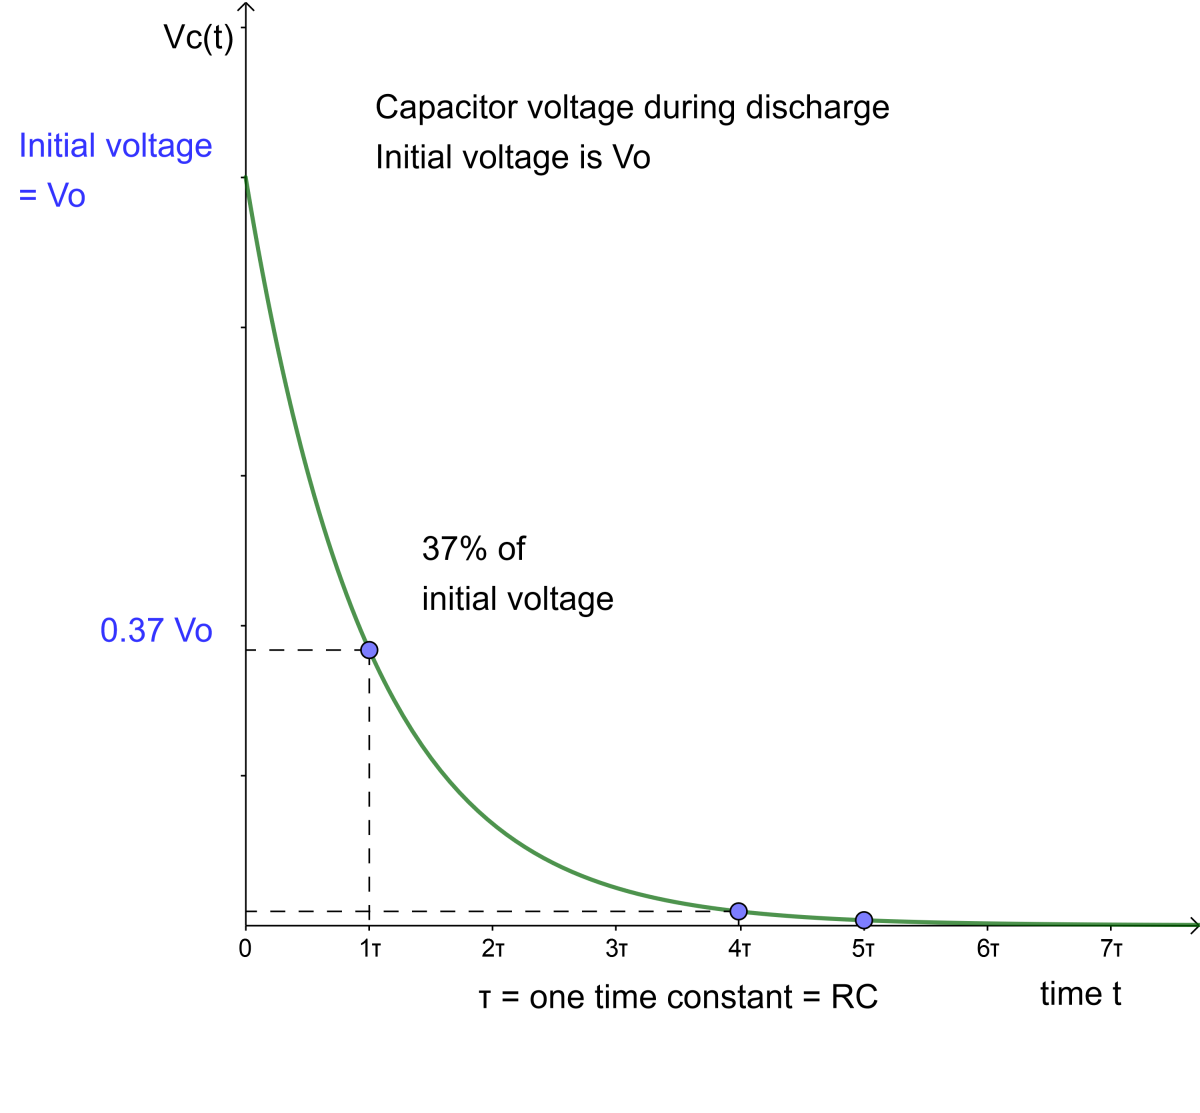 Voltage on a capacitor in an RC circuit as it discharges through the resistor R